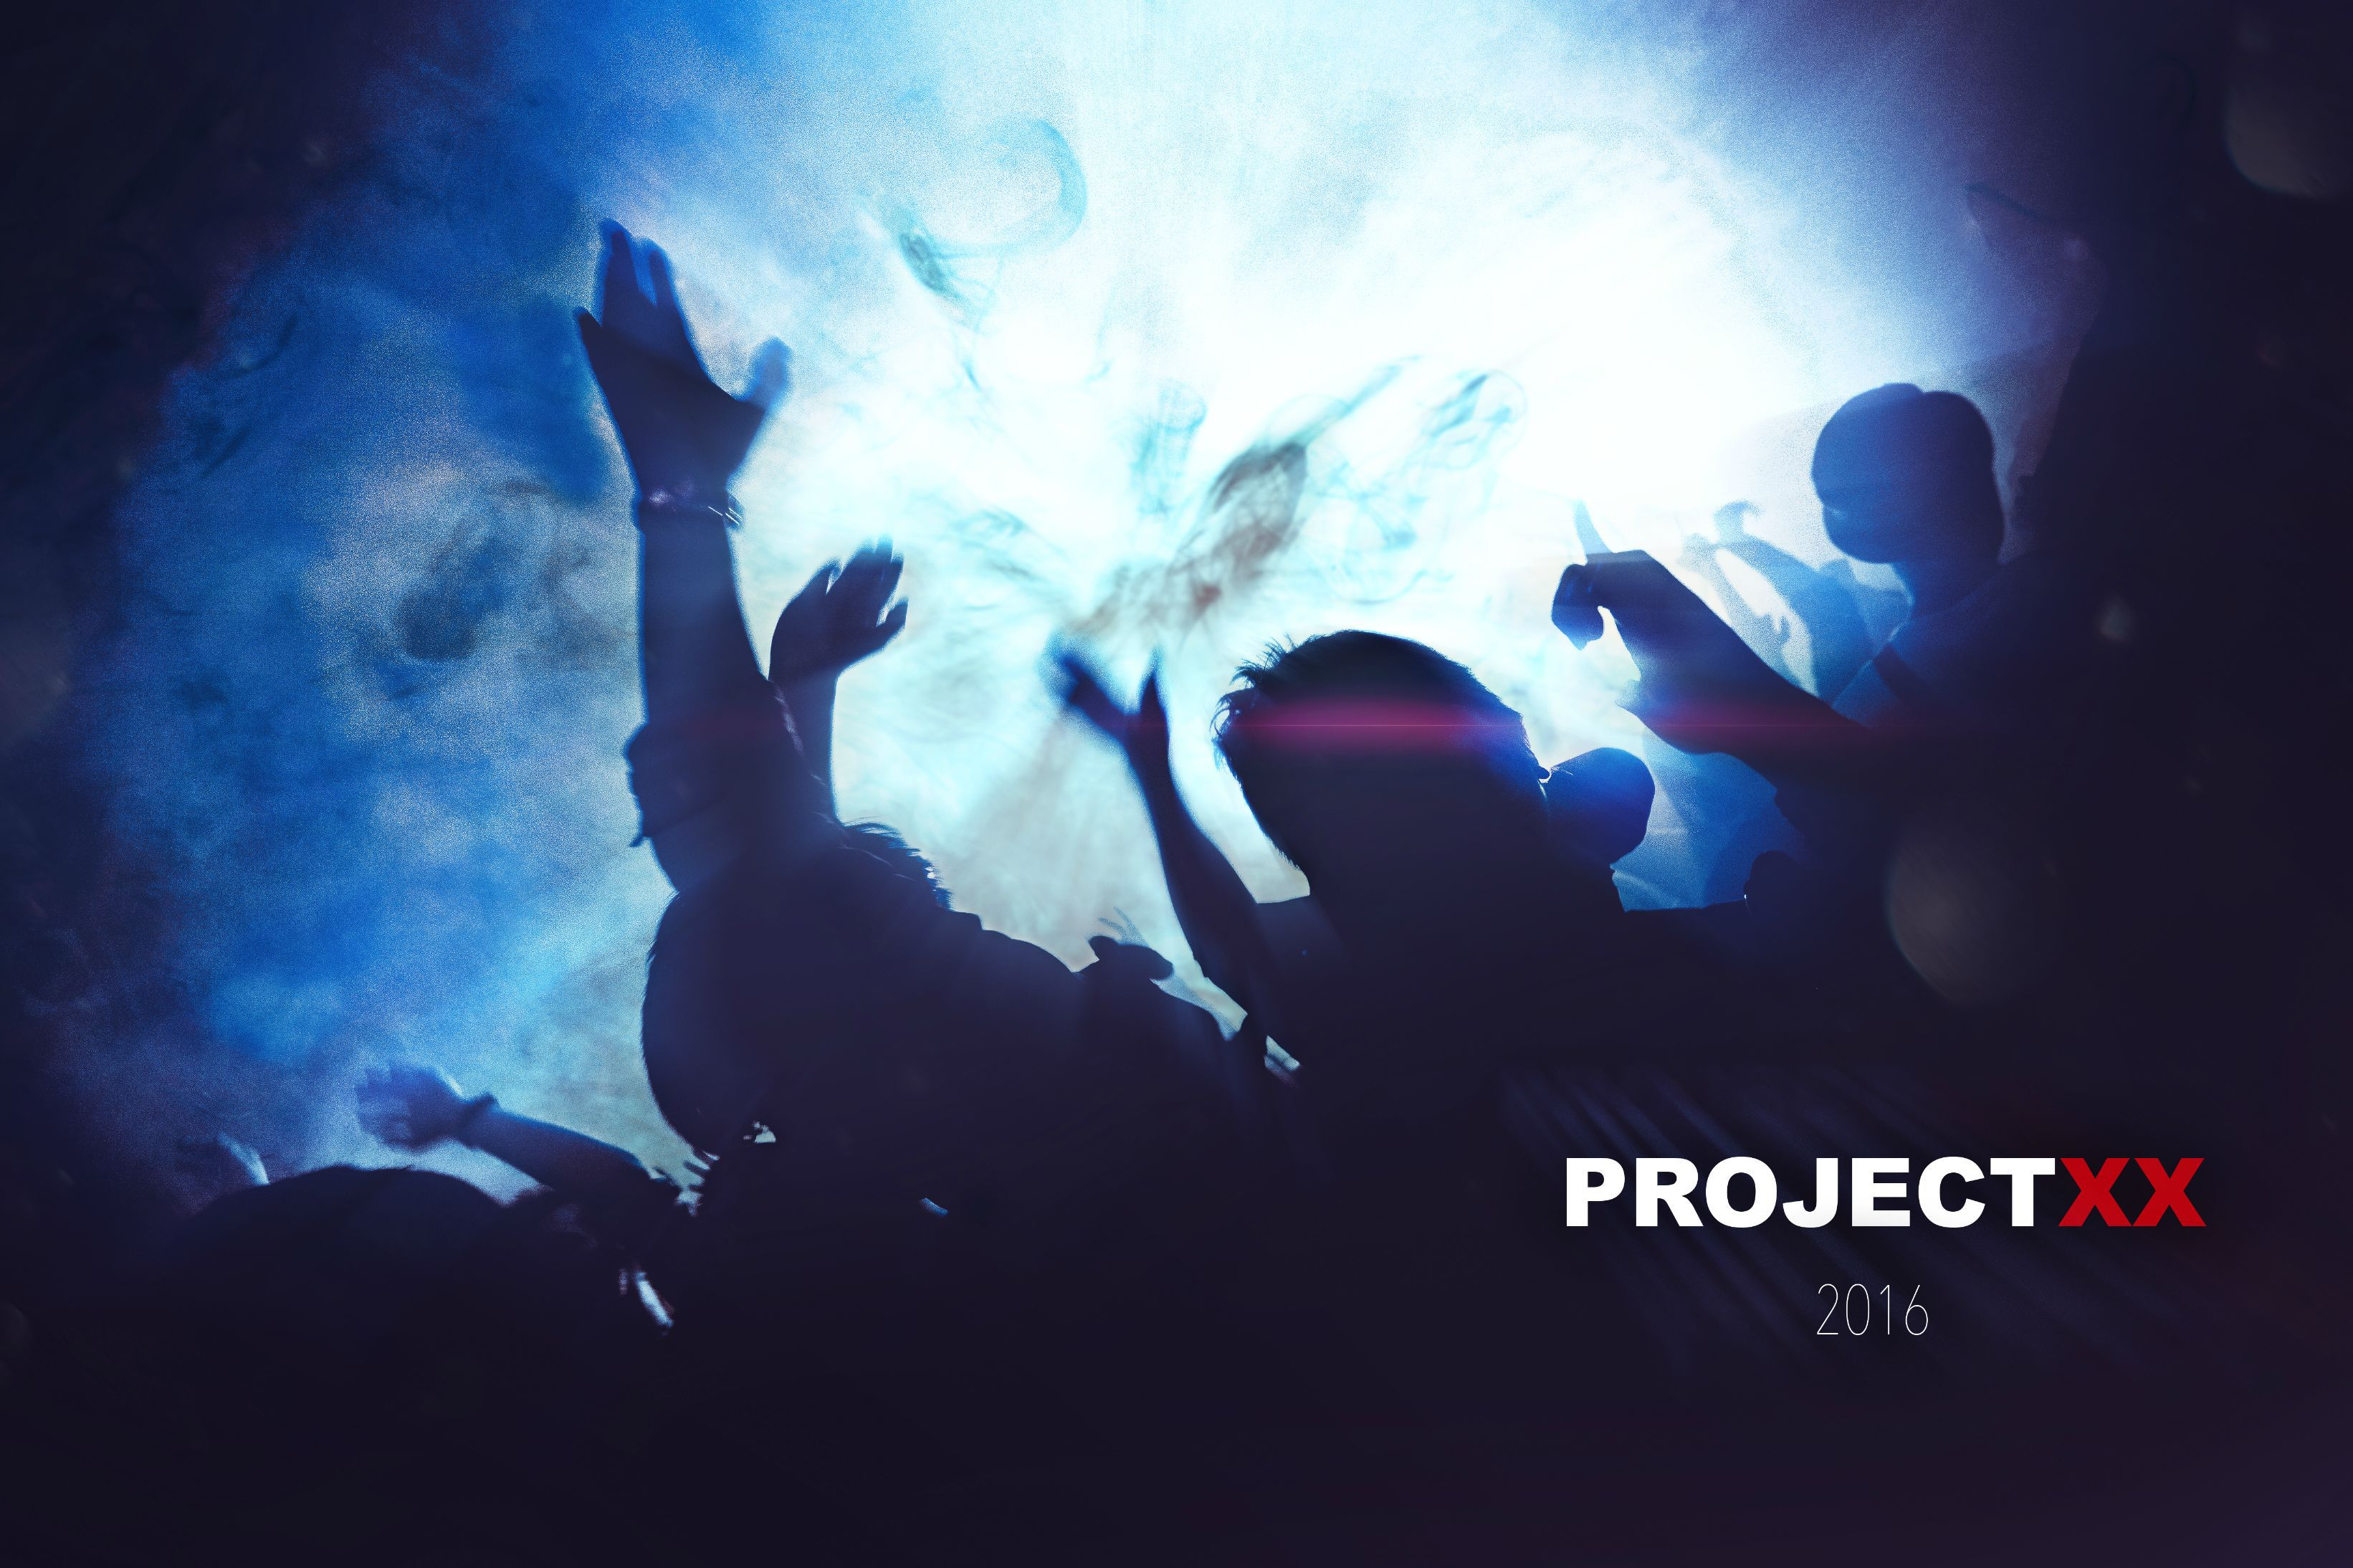 Project XX